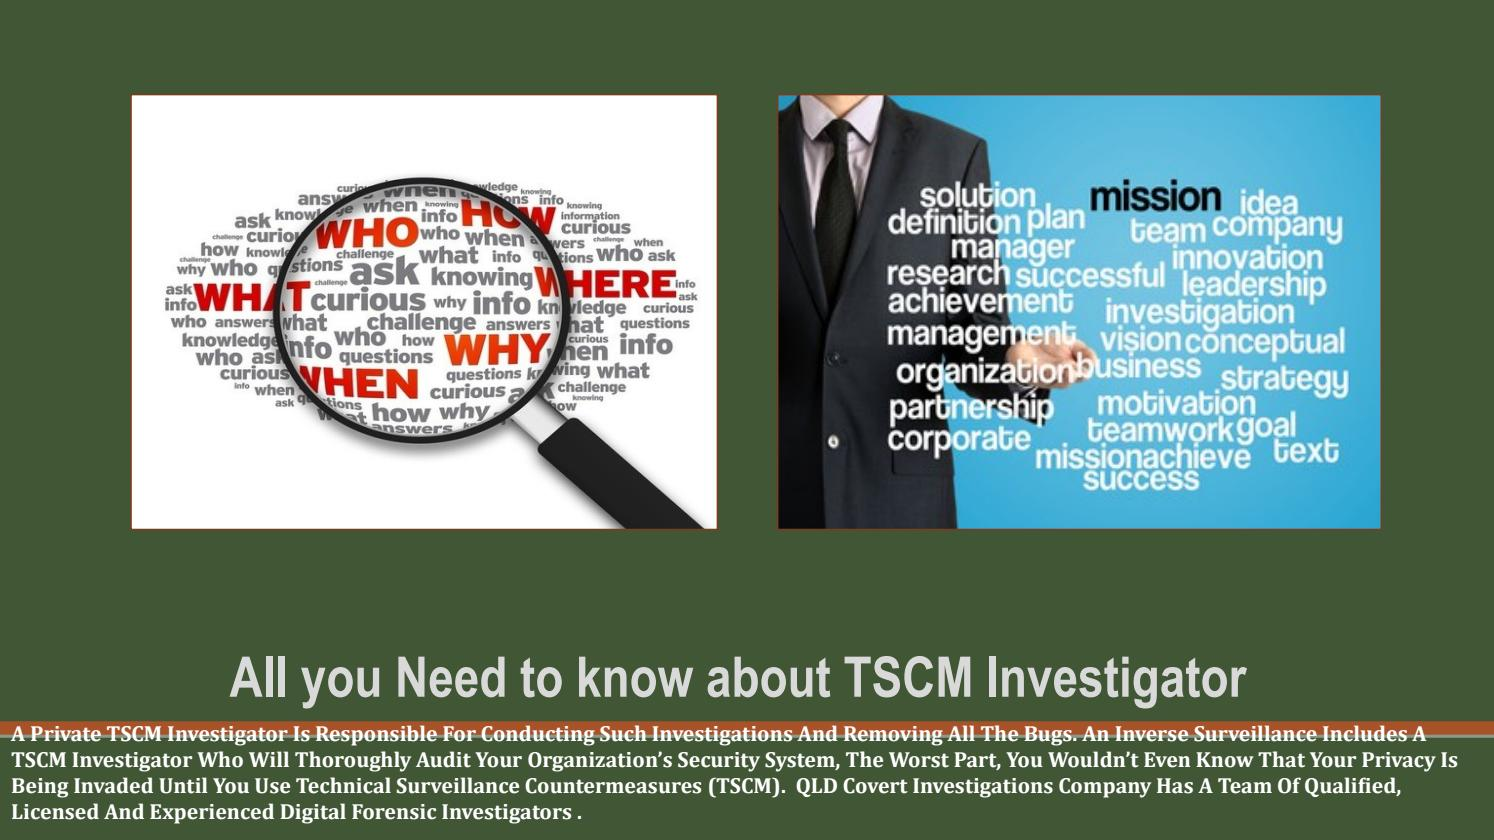 All you Need to know about TSCM Investigator by qldcovertpi